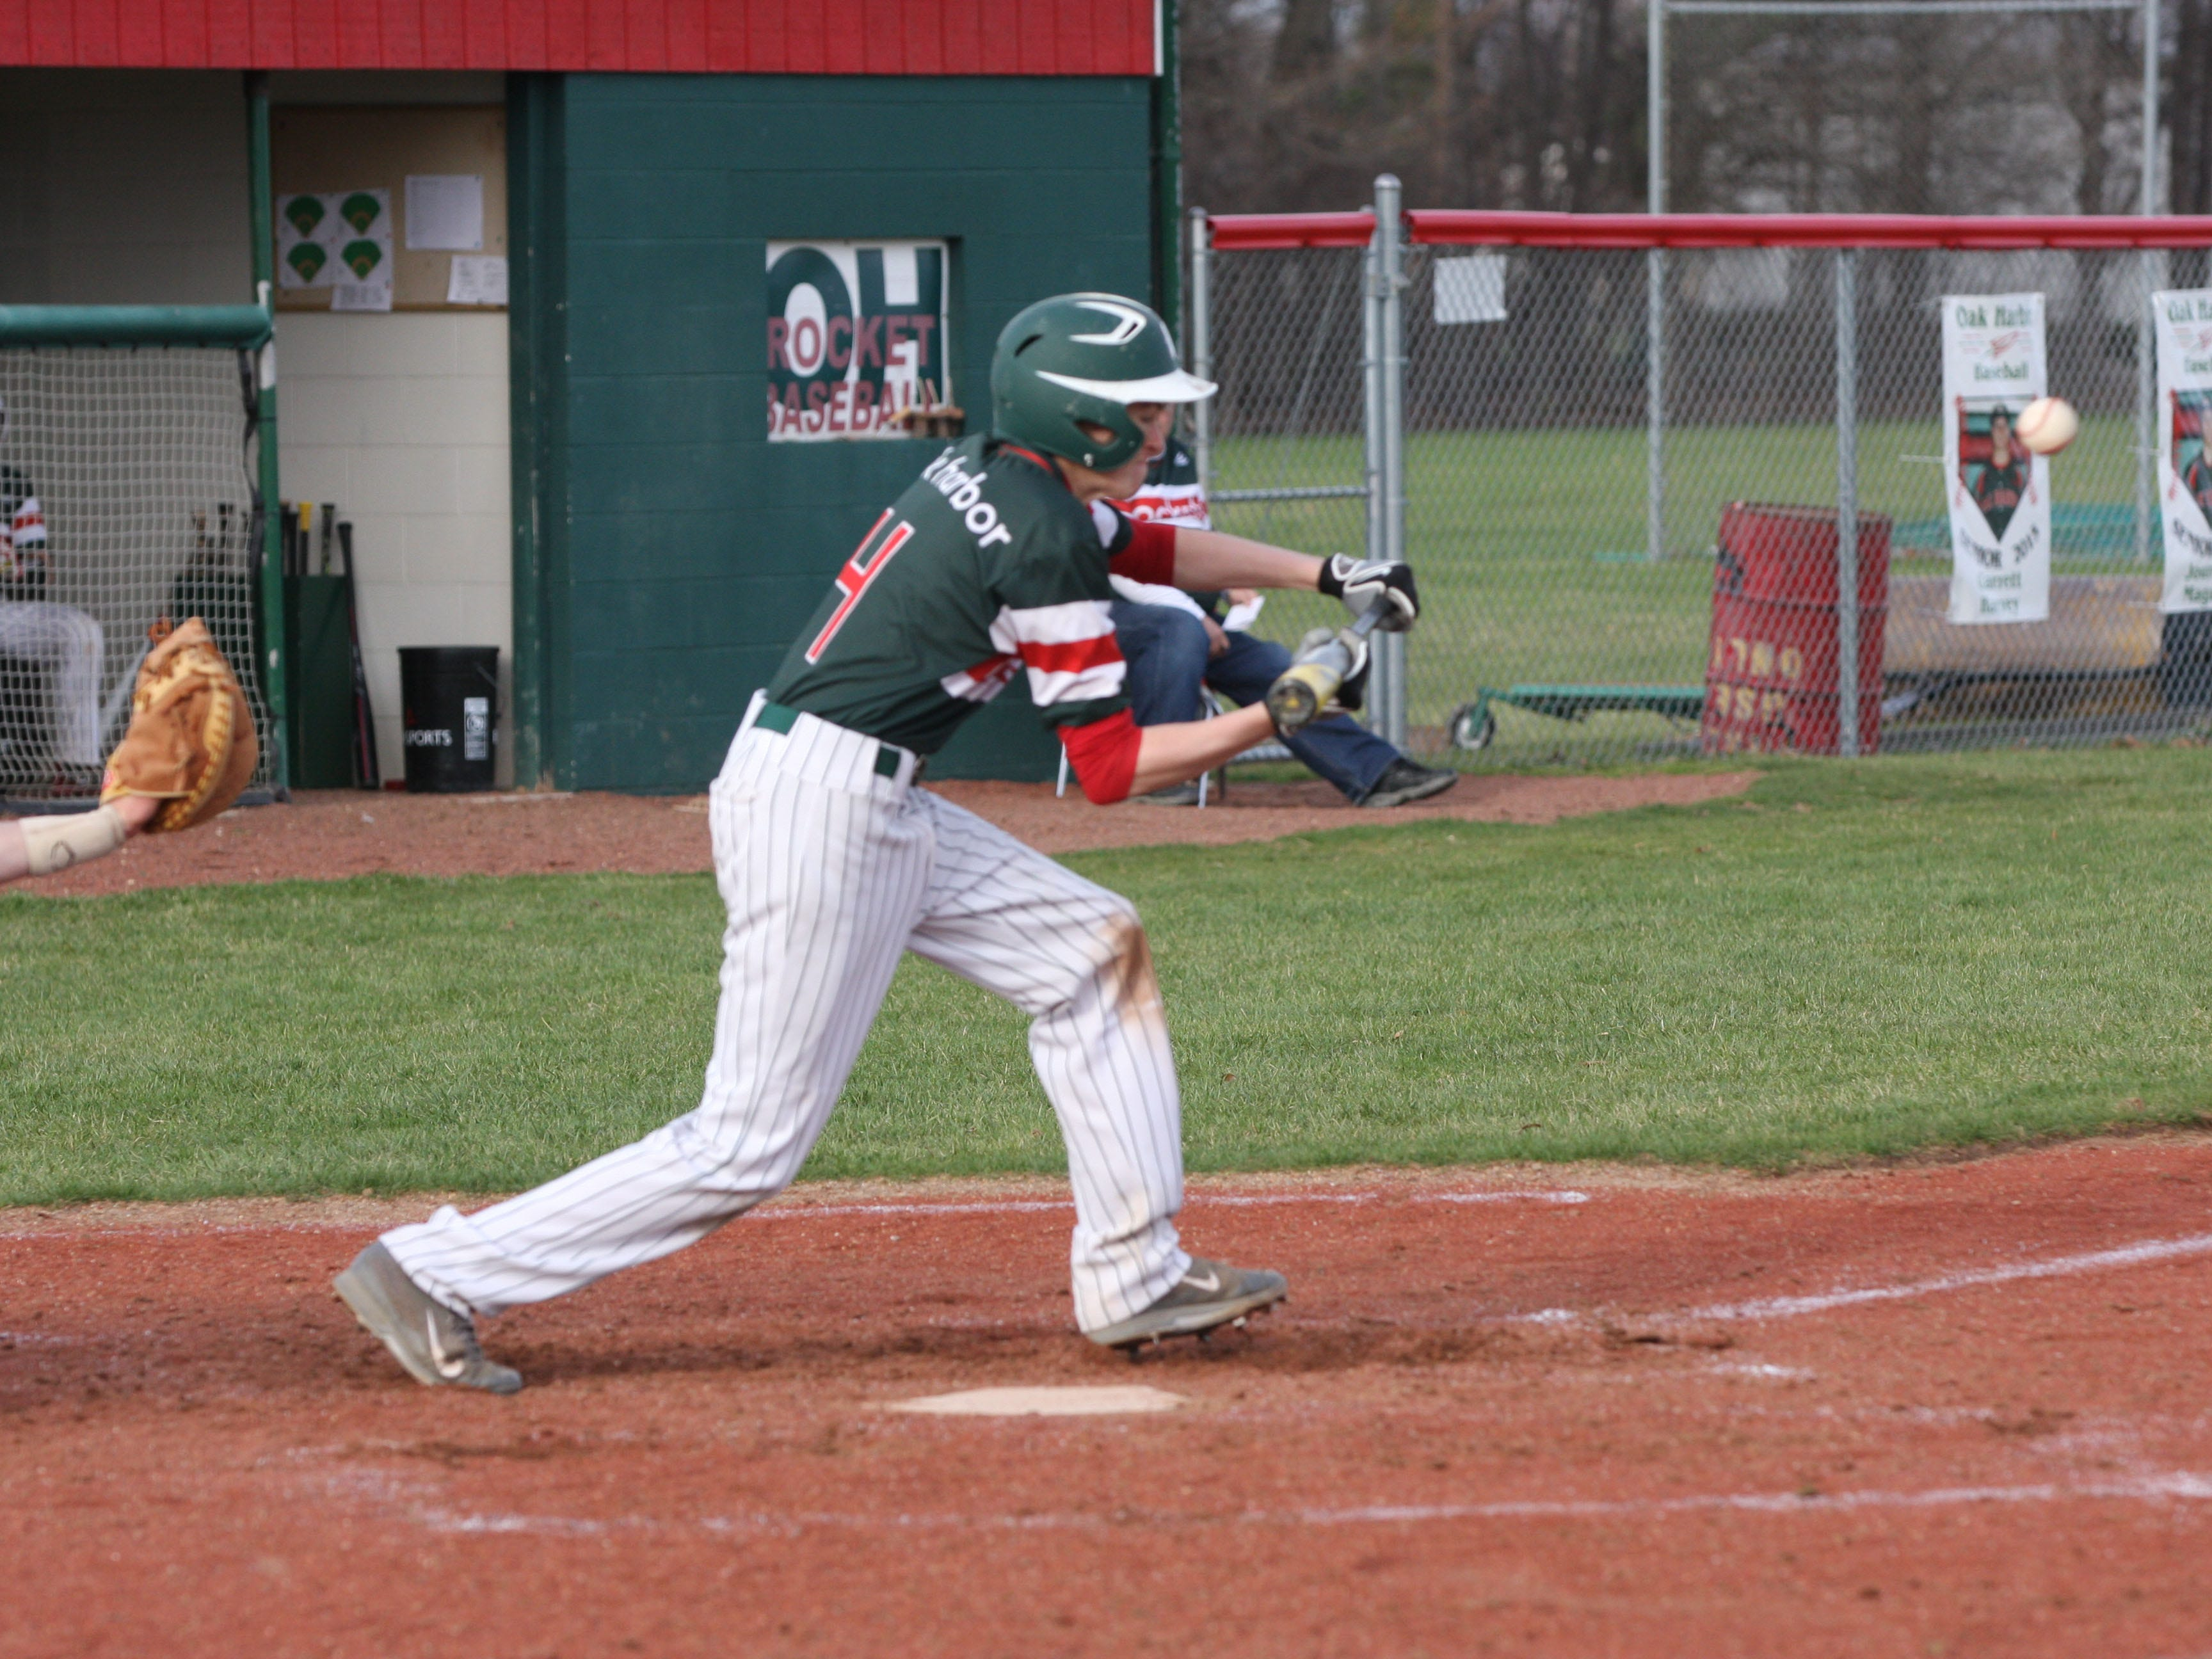 Oak Harbor's TJ Hartman lays down a sacrifice bunt in the sixth inning Tuesday against Port Clinton.